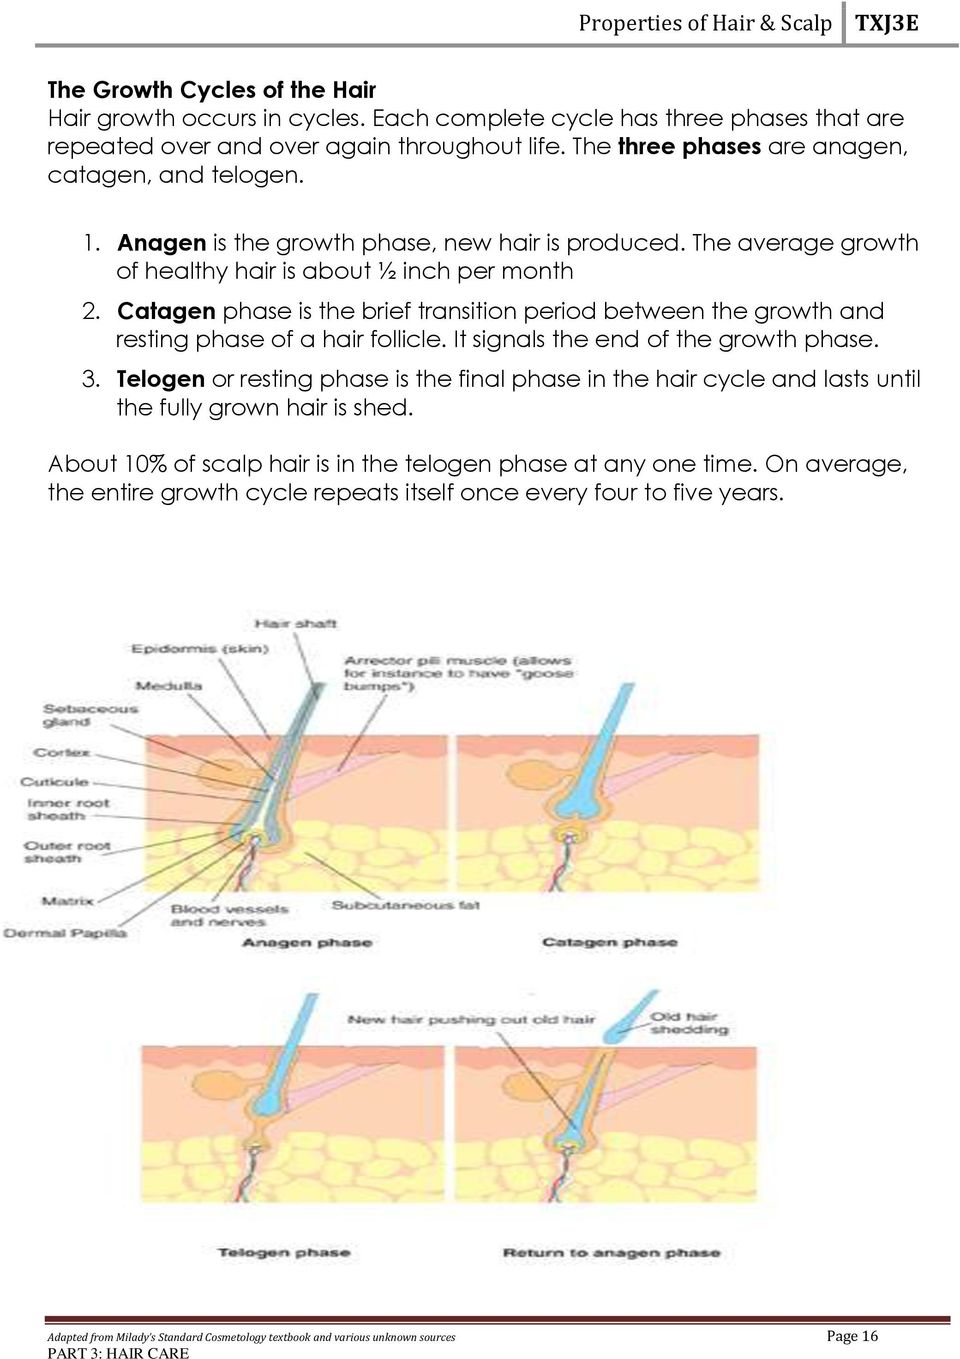 Properties of the hair scalp workbook pdf adapted from milady s standard cosmetology textbook and various unknown sources page 16 catagen phase is the brief transition period between the growth and fandeluxe Image collections